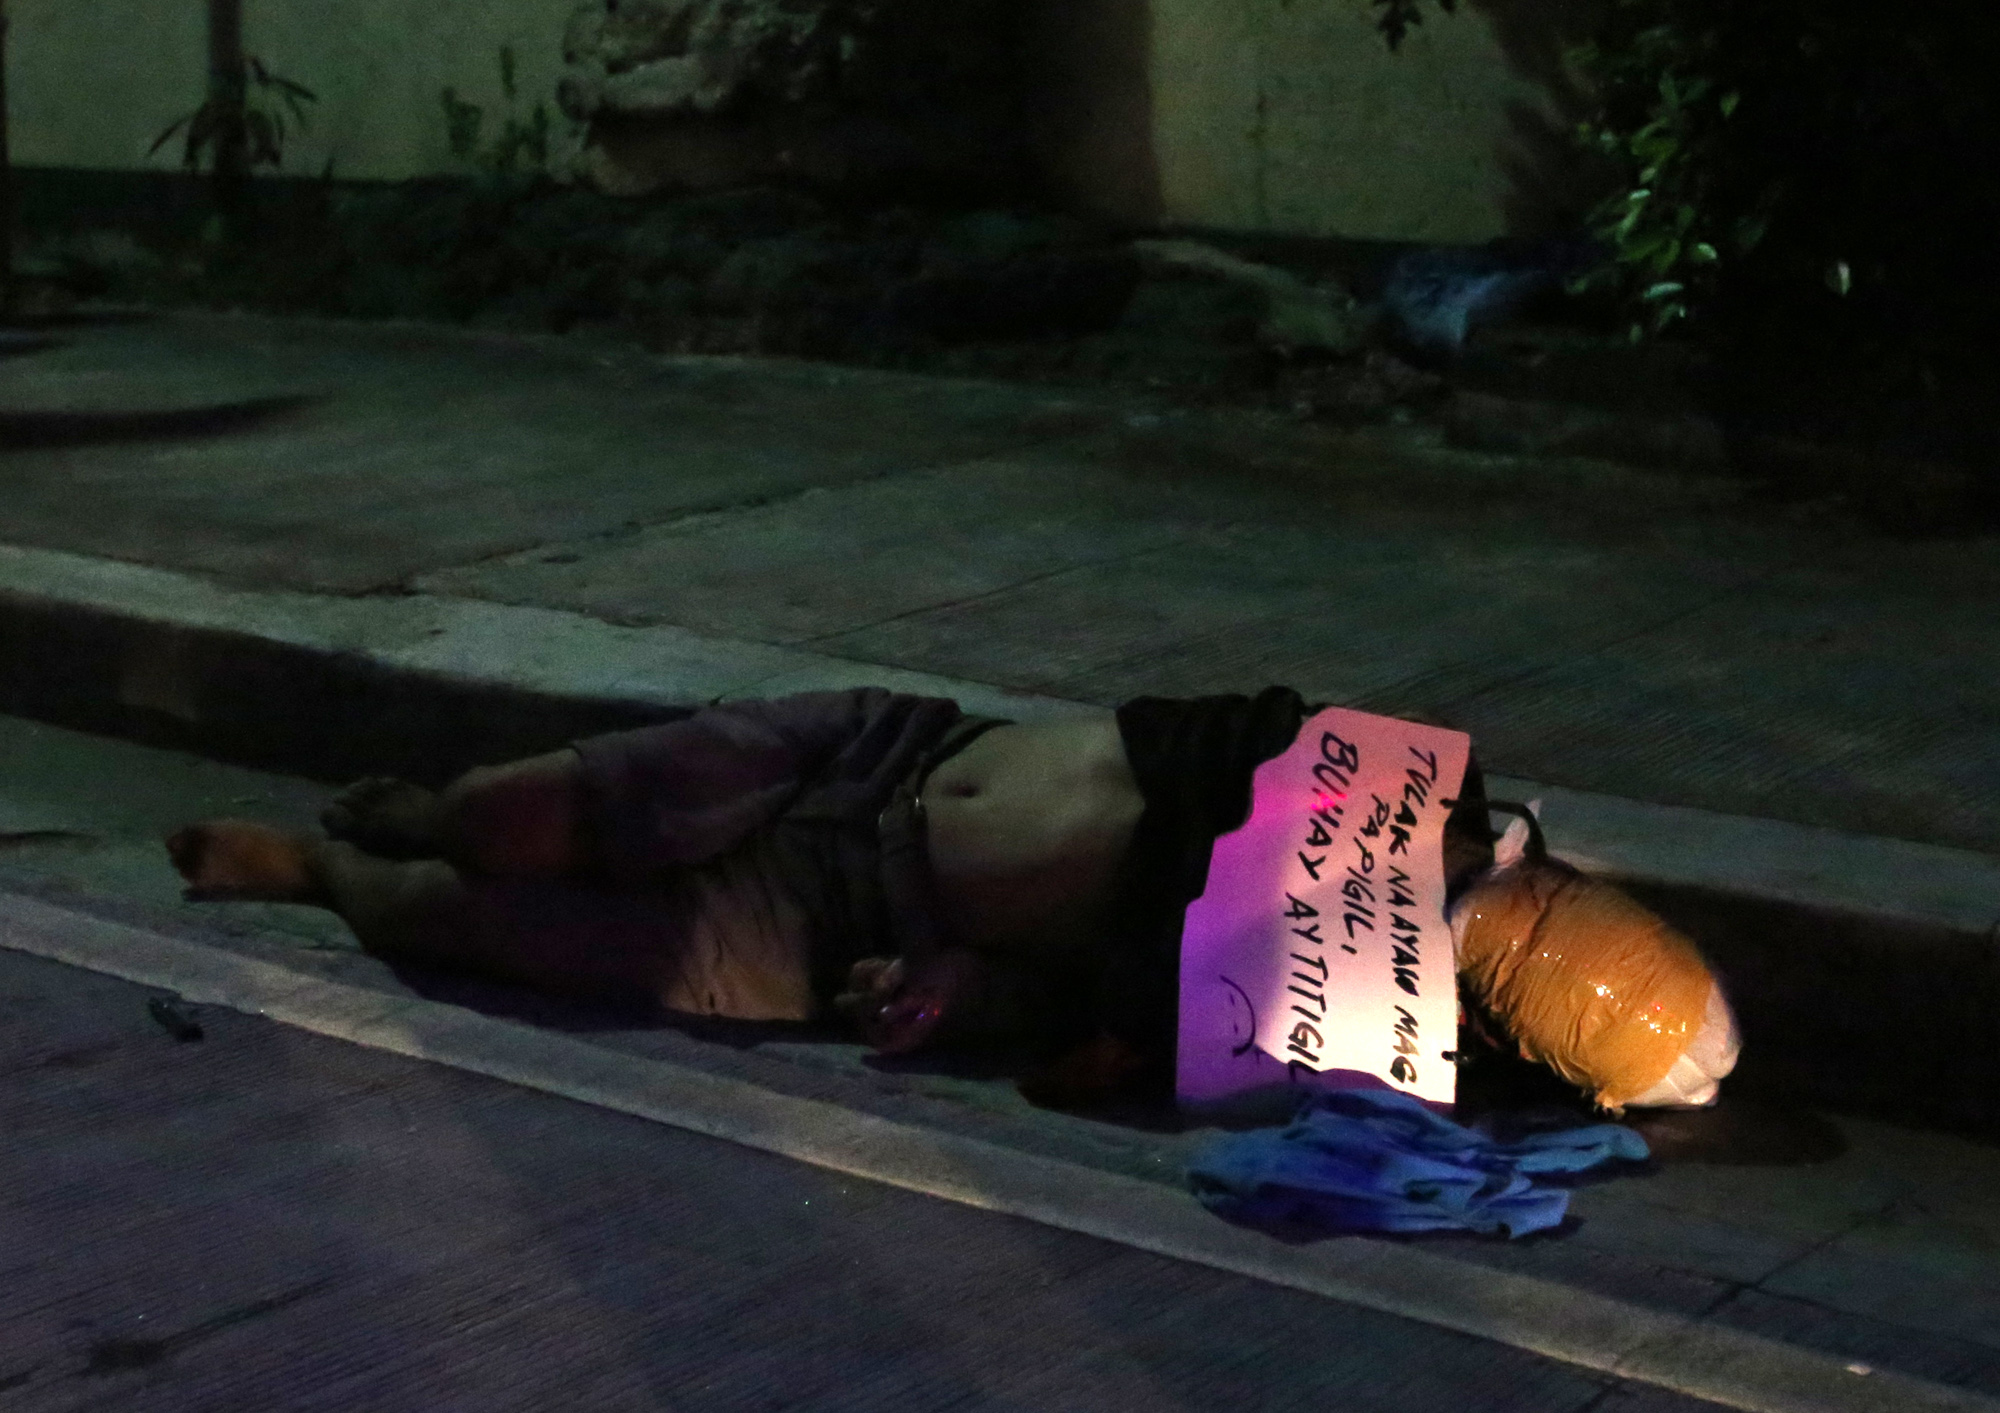 """A victim of summary execution is dumped at Florentino Street, Sampaloc, Manila on October 1, 2016. A cardboard was left with words, """"Tulak na ayaw magpapigil, buhay ay titigil"""" (A pusher who won't stop will have his life ended)"""